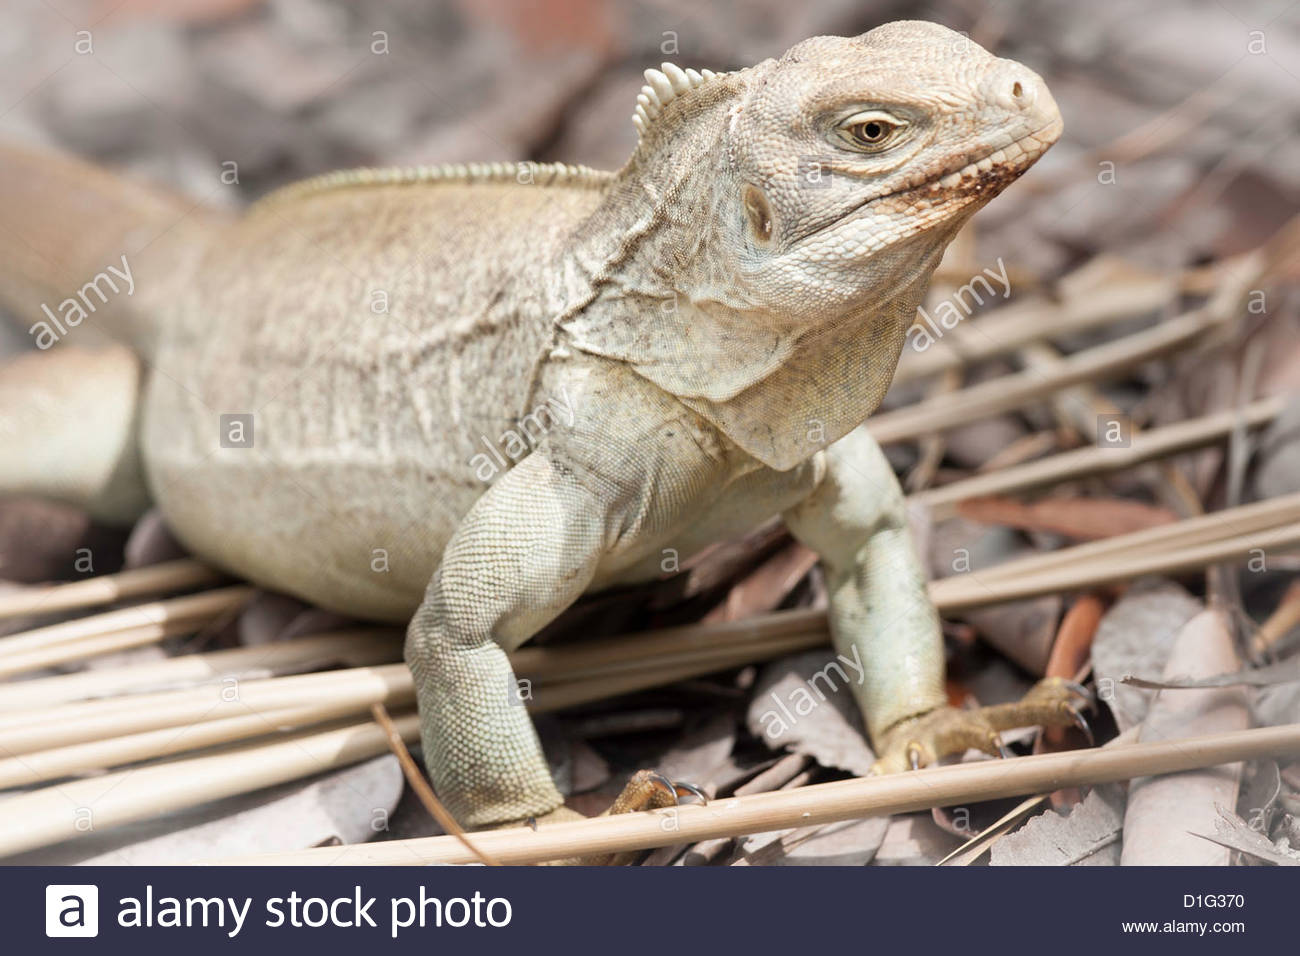 Rock Iguana endemic to the country, Iguana Island, Providenciales, Turks and Caicos Islands, West Indies, Caribbean - Stock Image